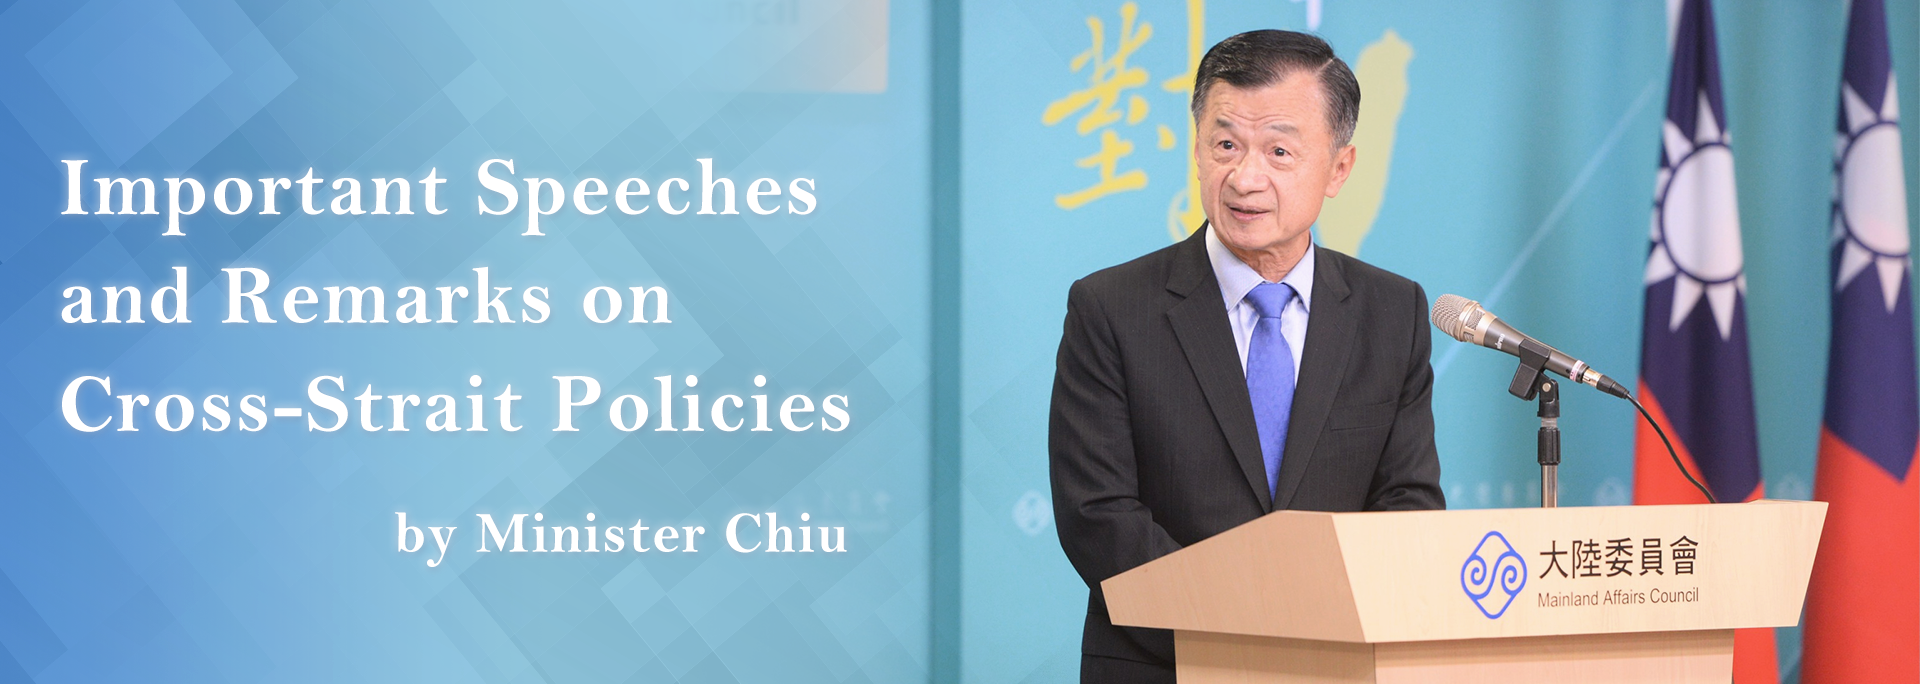 Minister Chiu's March 18 Remarks to the Press